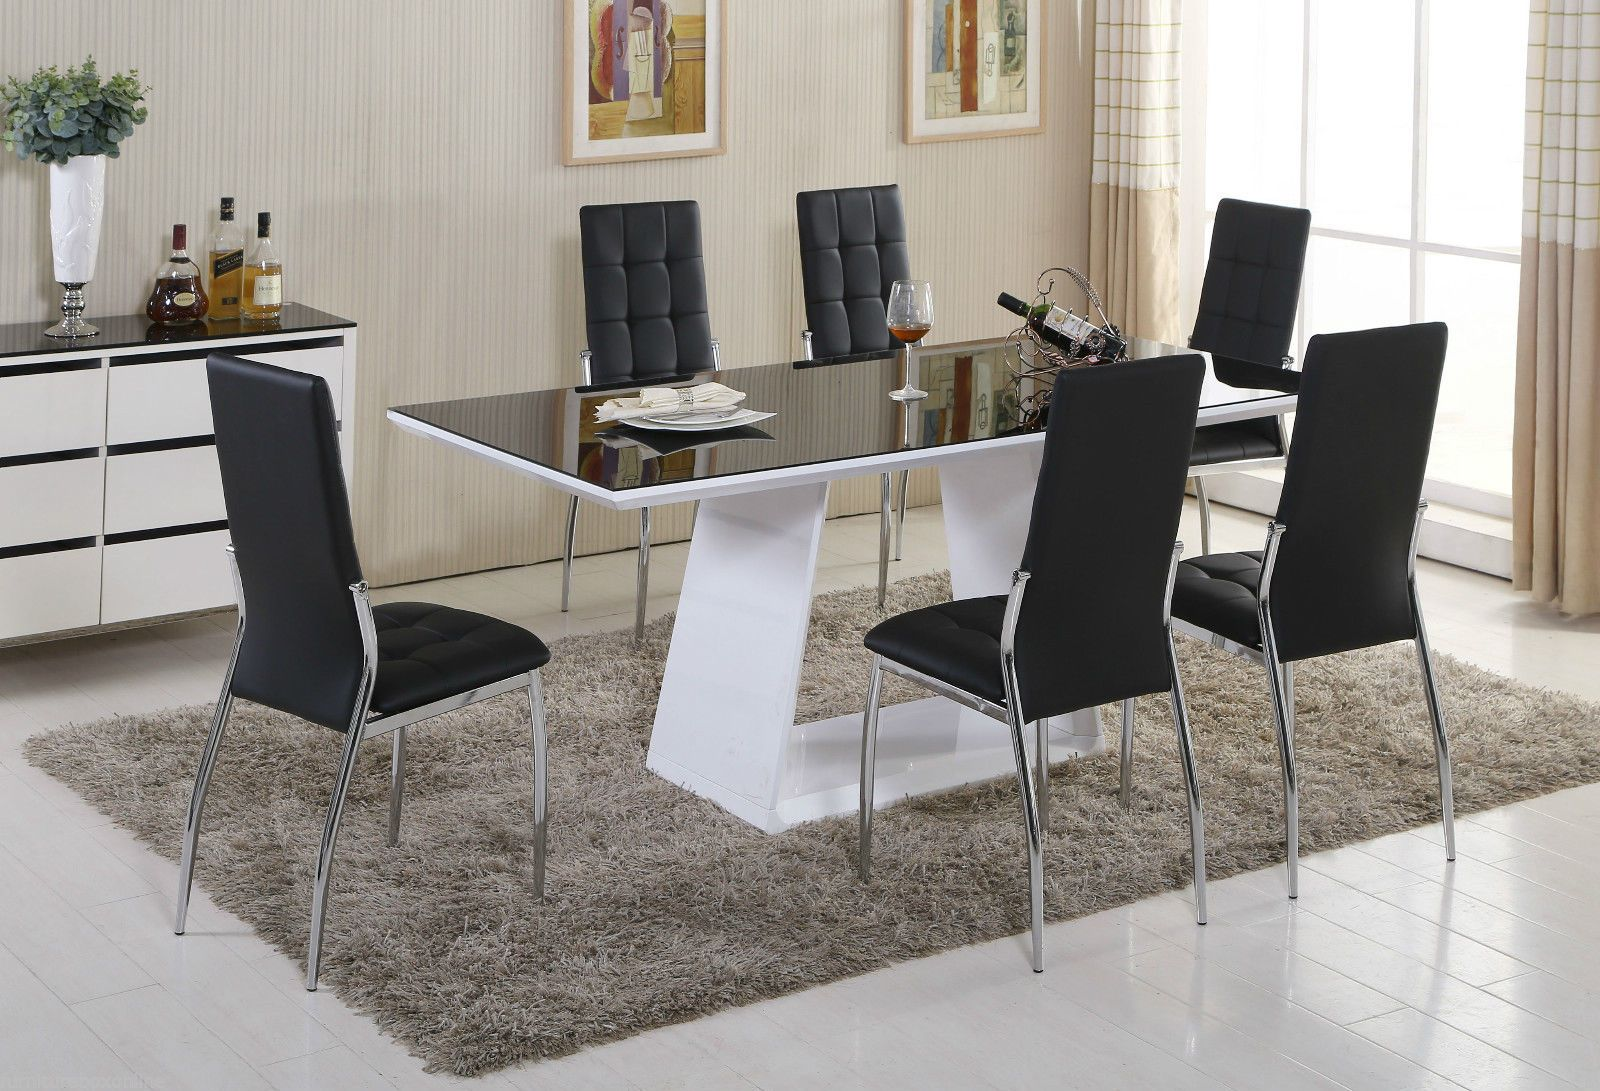 Dining Room Table Dining Table And Chairs Black And White Amazing Oval Dining Room Table And Chairs Design Decoration